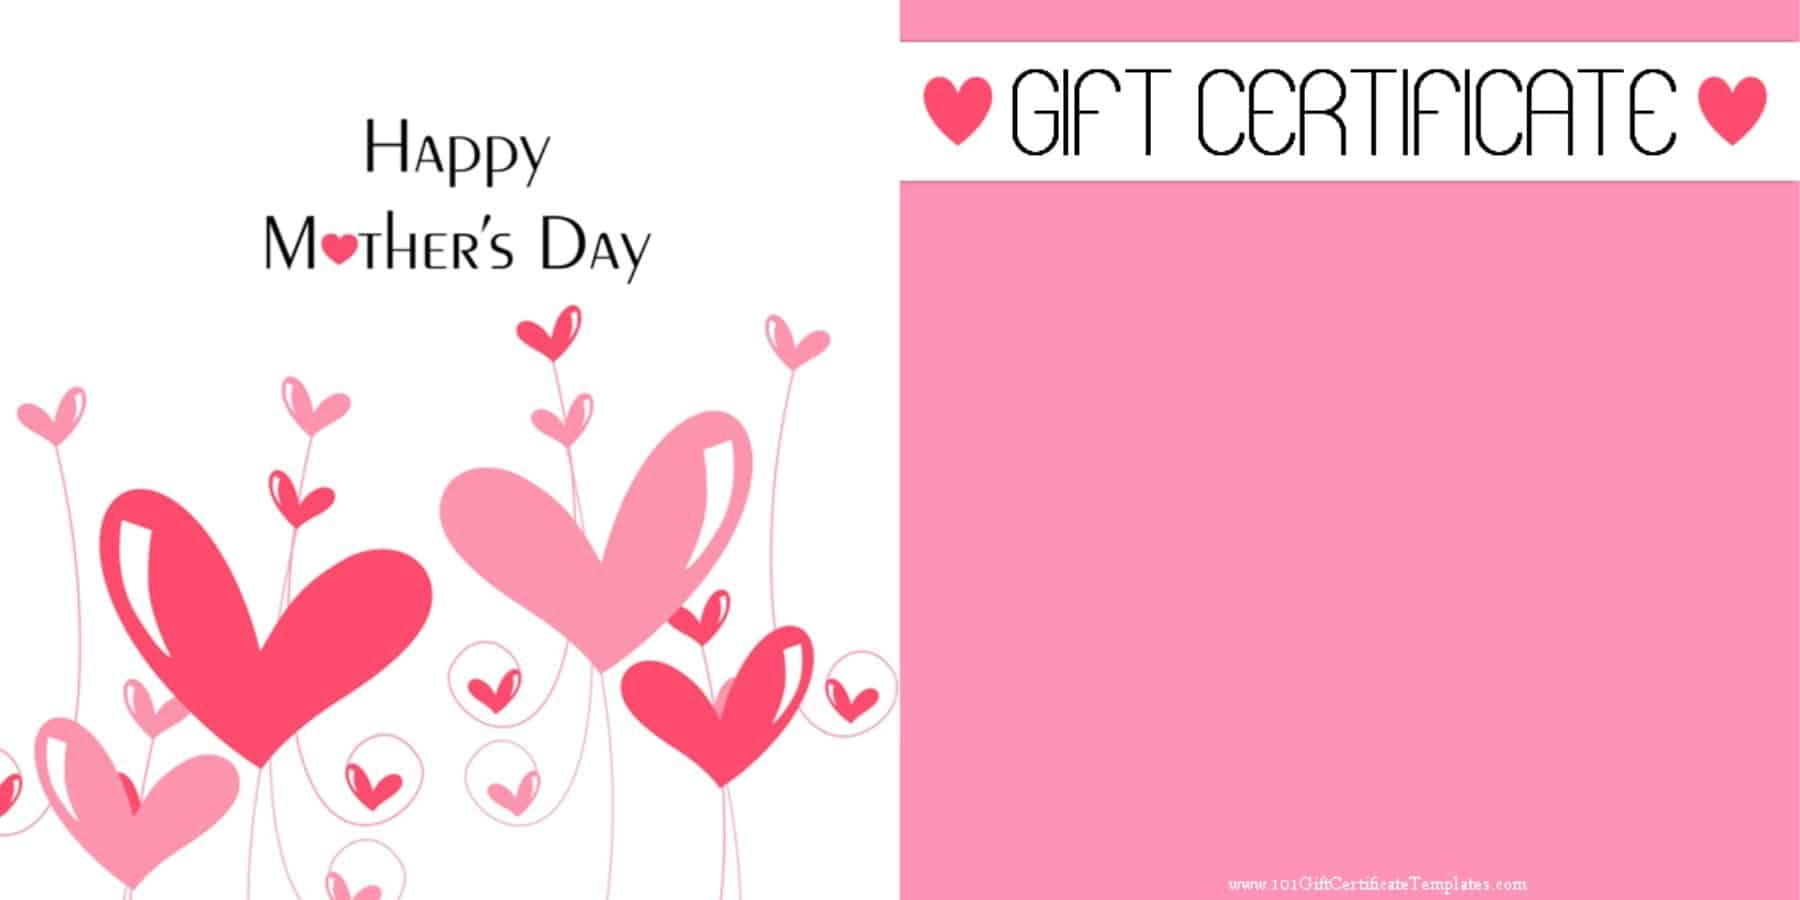 free gift card template - mother 39 s day gift certificate templates